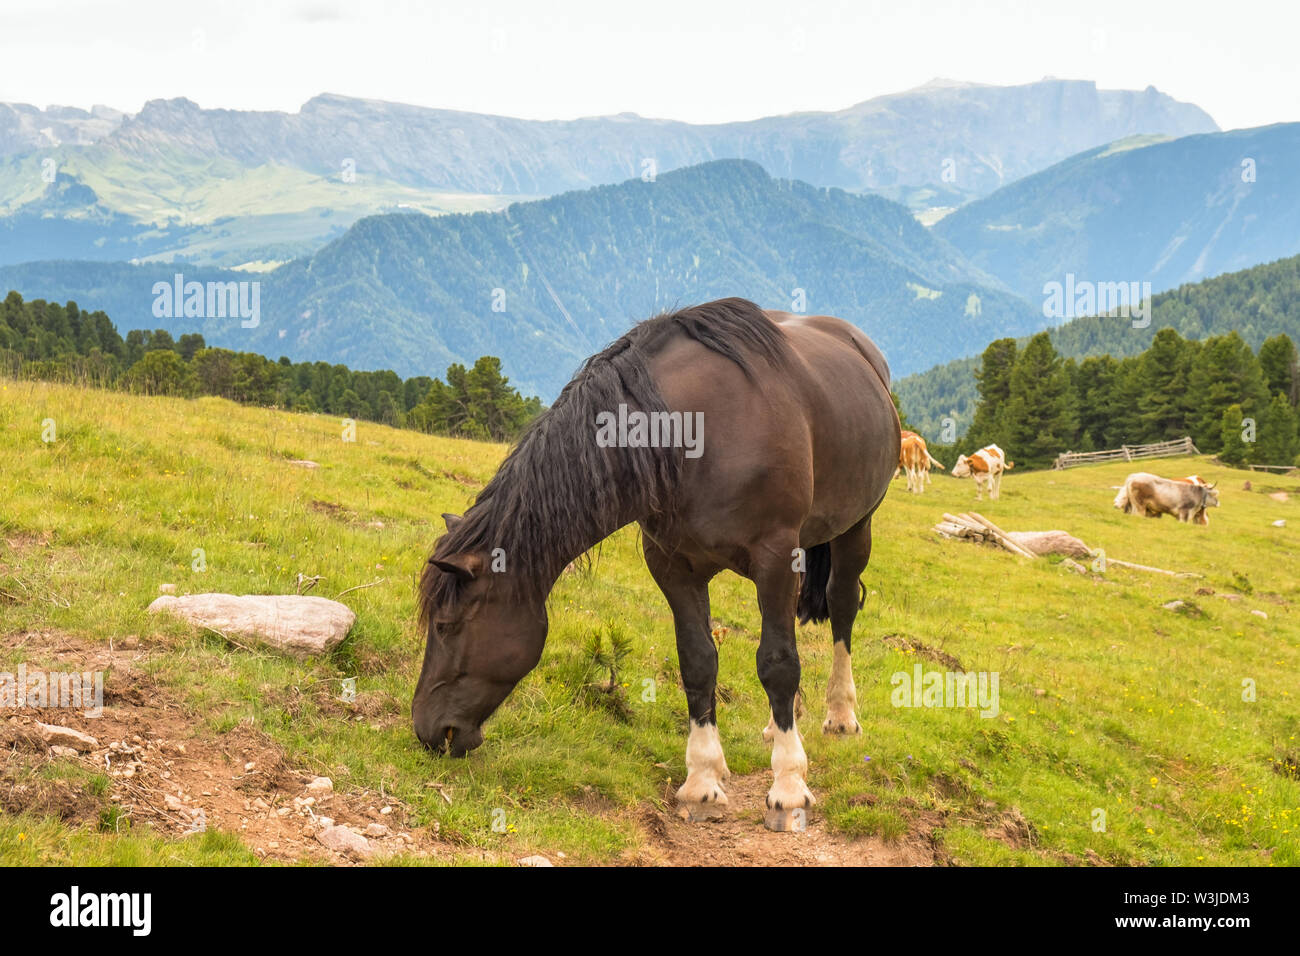 Horse grazing on an alp meadow with beautiful views - Stock Image